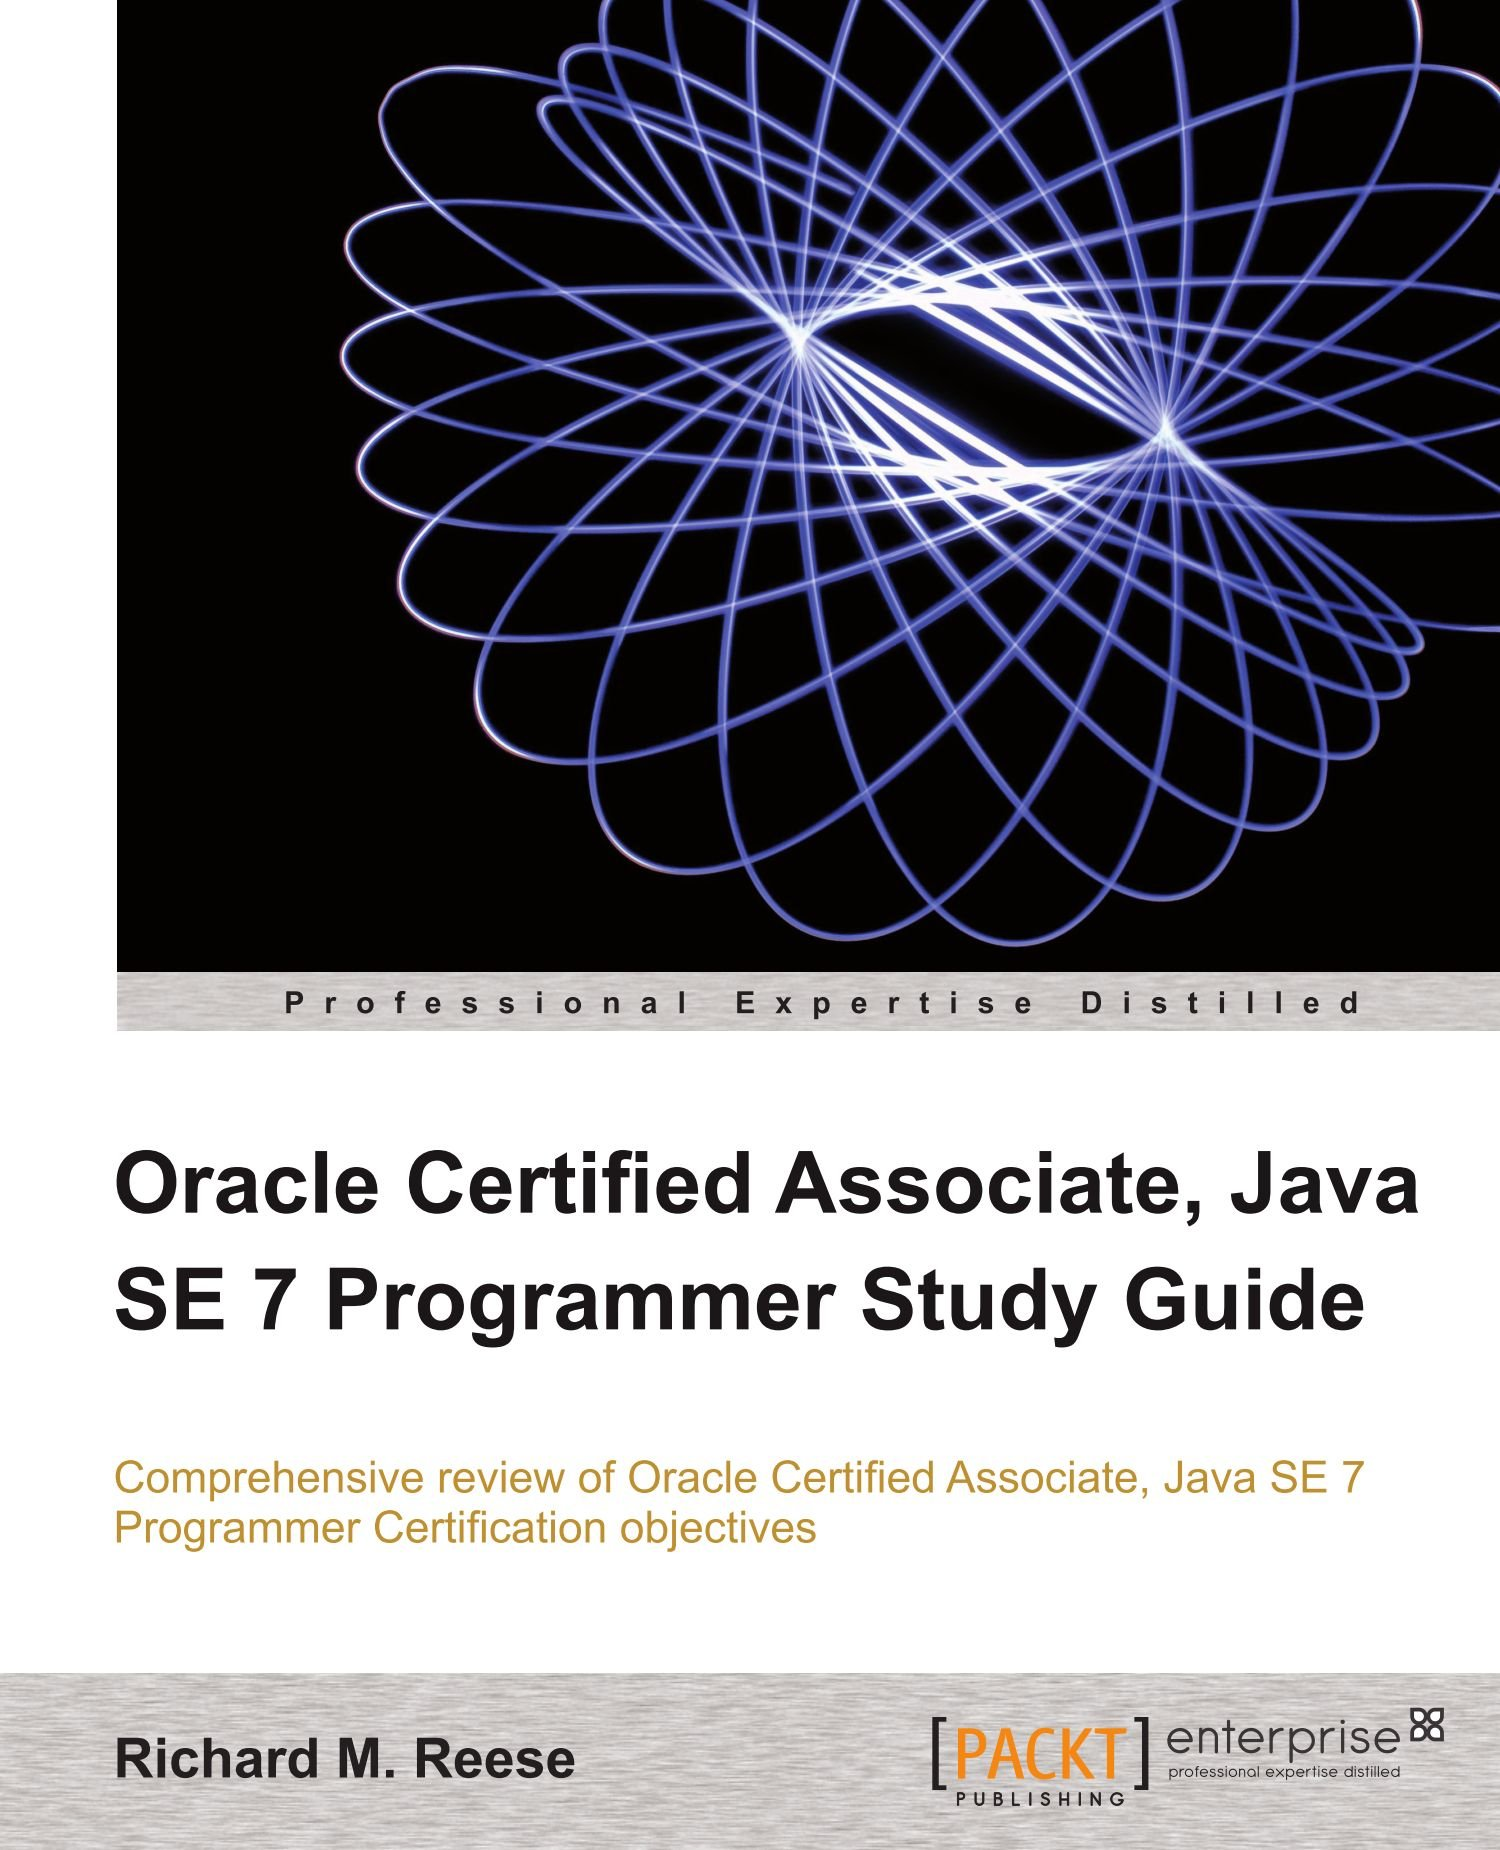 Oracle certified associate java se 7 programmer study guide m oracle certified associate java se 7 programmer study guide m reese richard 9781849687324 amazon books xflitez Image collections